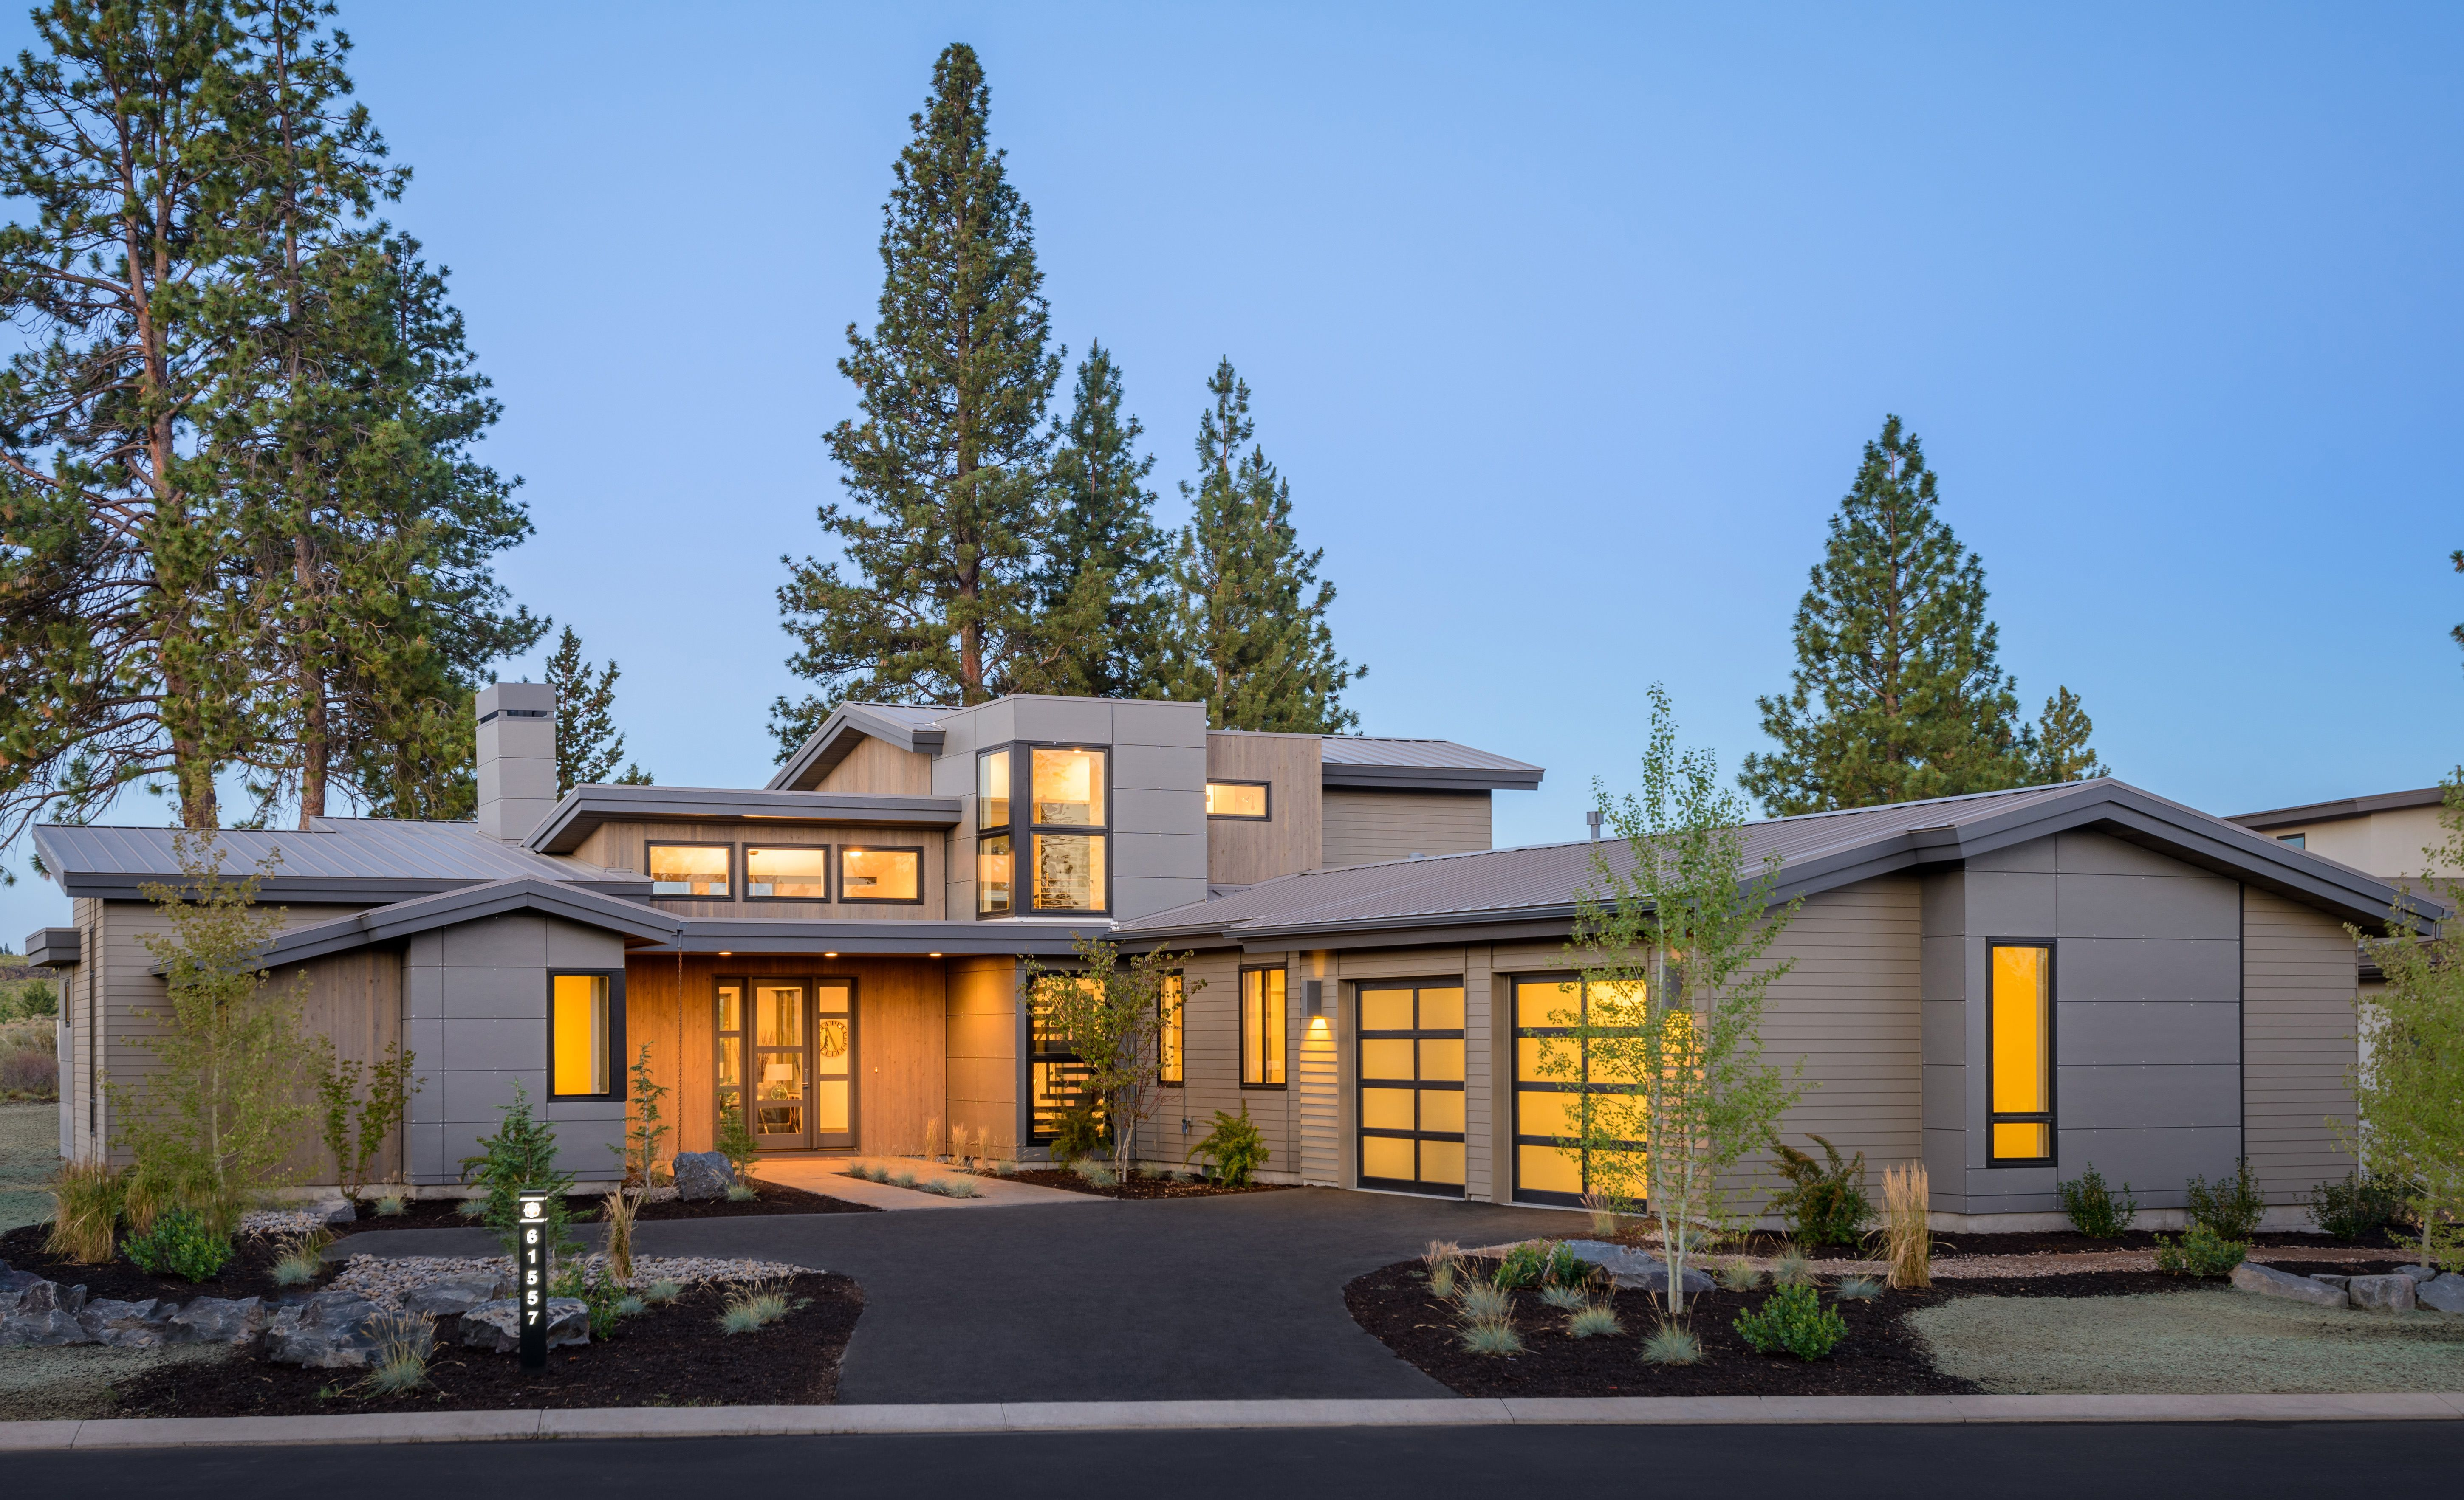 Ranch Homes Experience A Revival These Last Years In Concert Of The Foremost Iconic House House Have Enjoyed Fame For A Craftsman House Plans Modern House Plans Contemporary House Plans